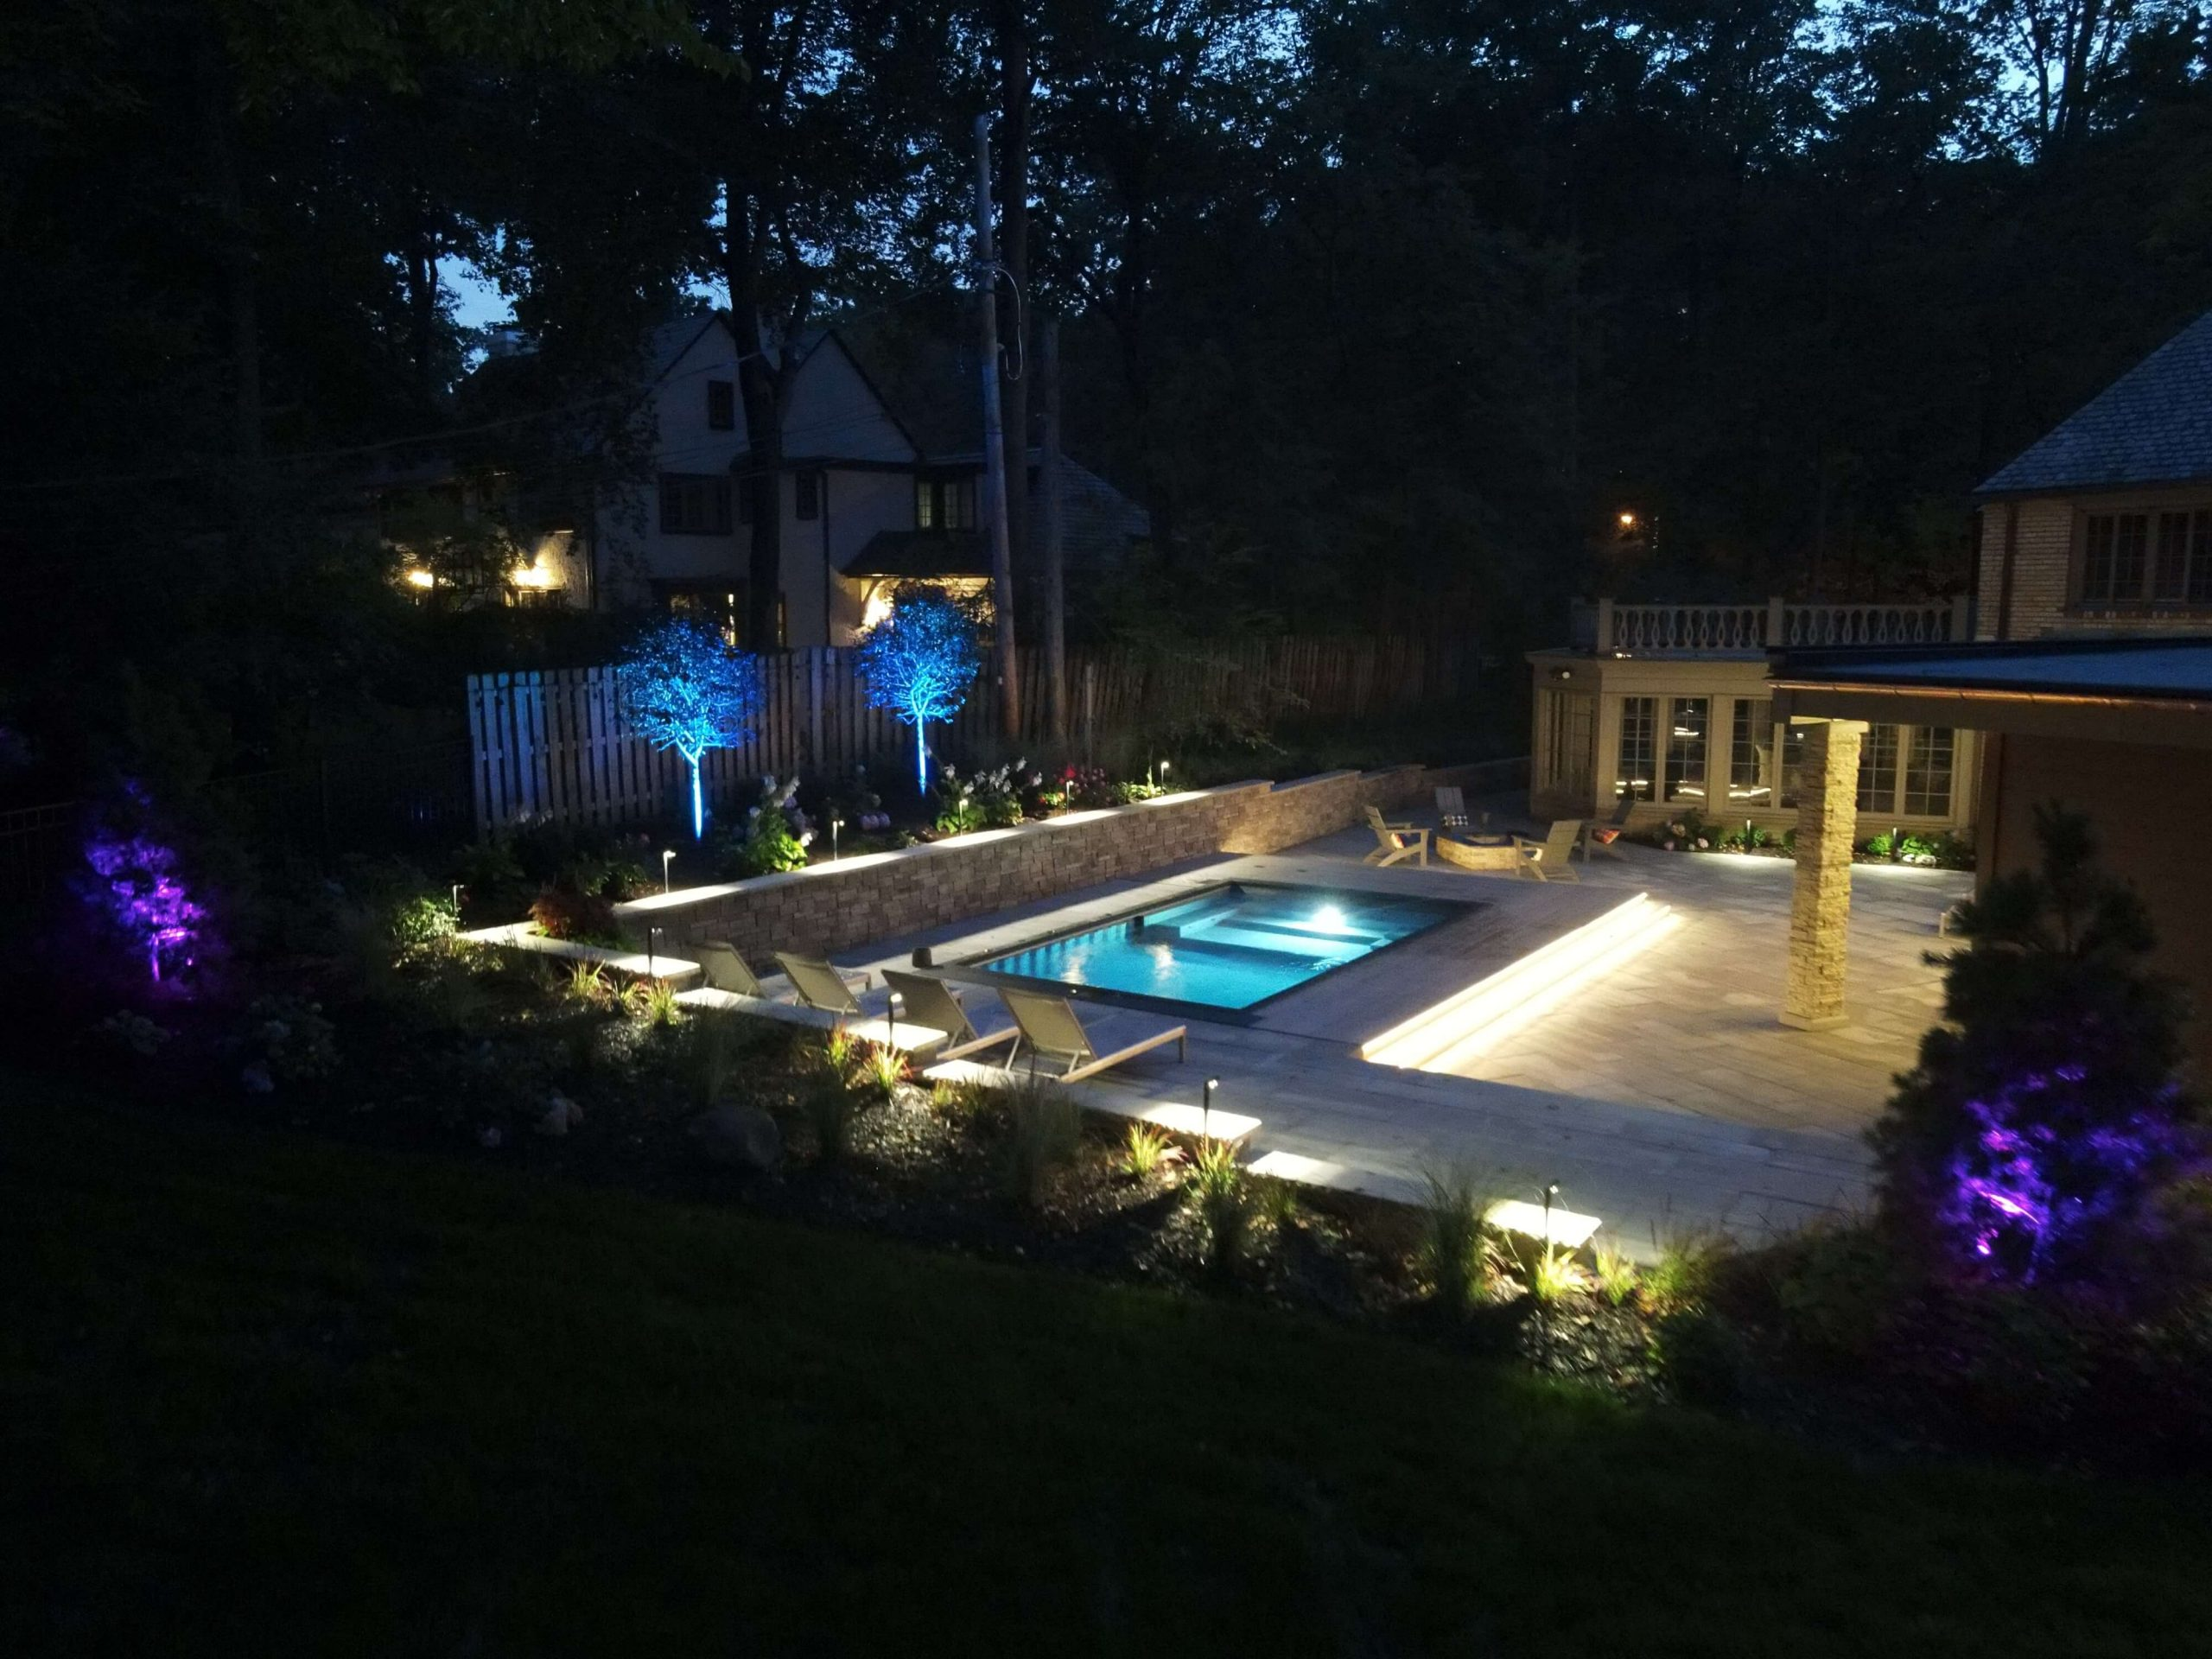 Lit Up Pool Area In Evening